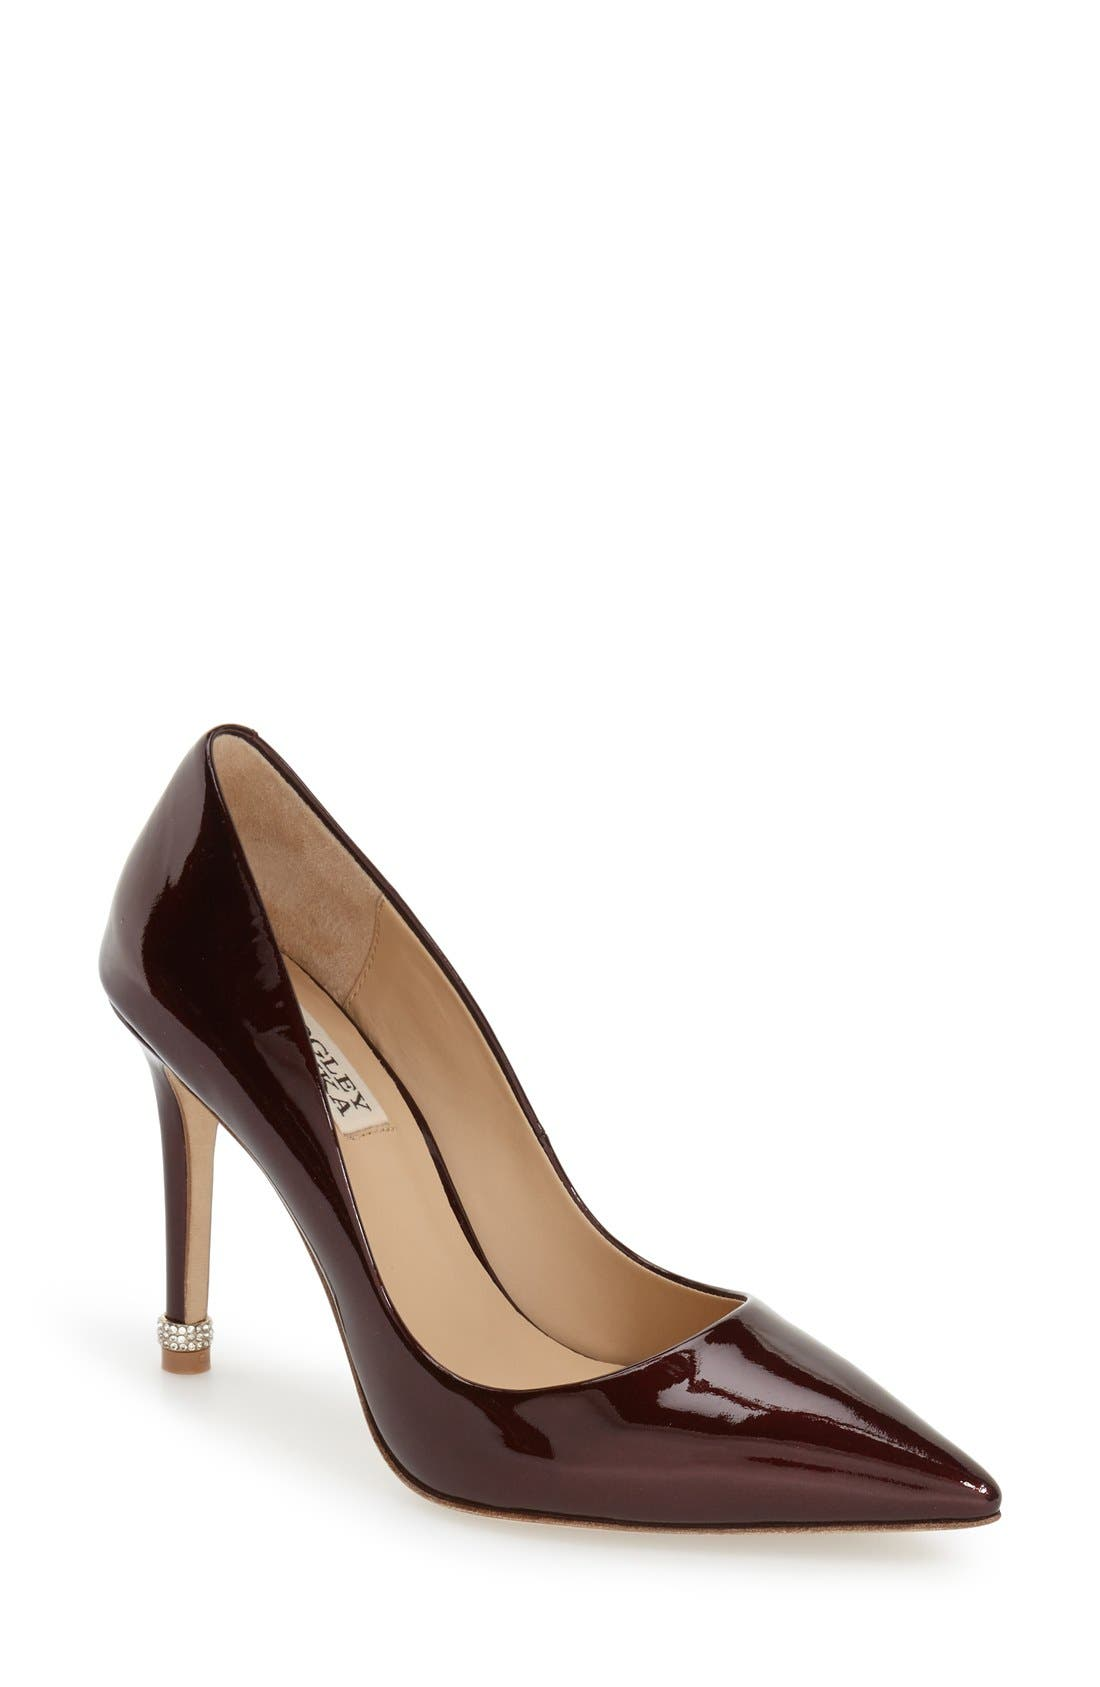 Main Image - Badgley Mischka 'Noelle' Pointy Toe Pump (Women)